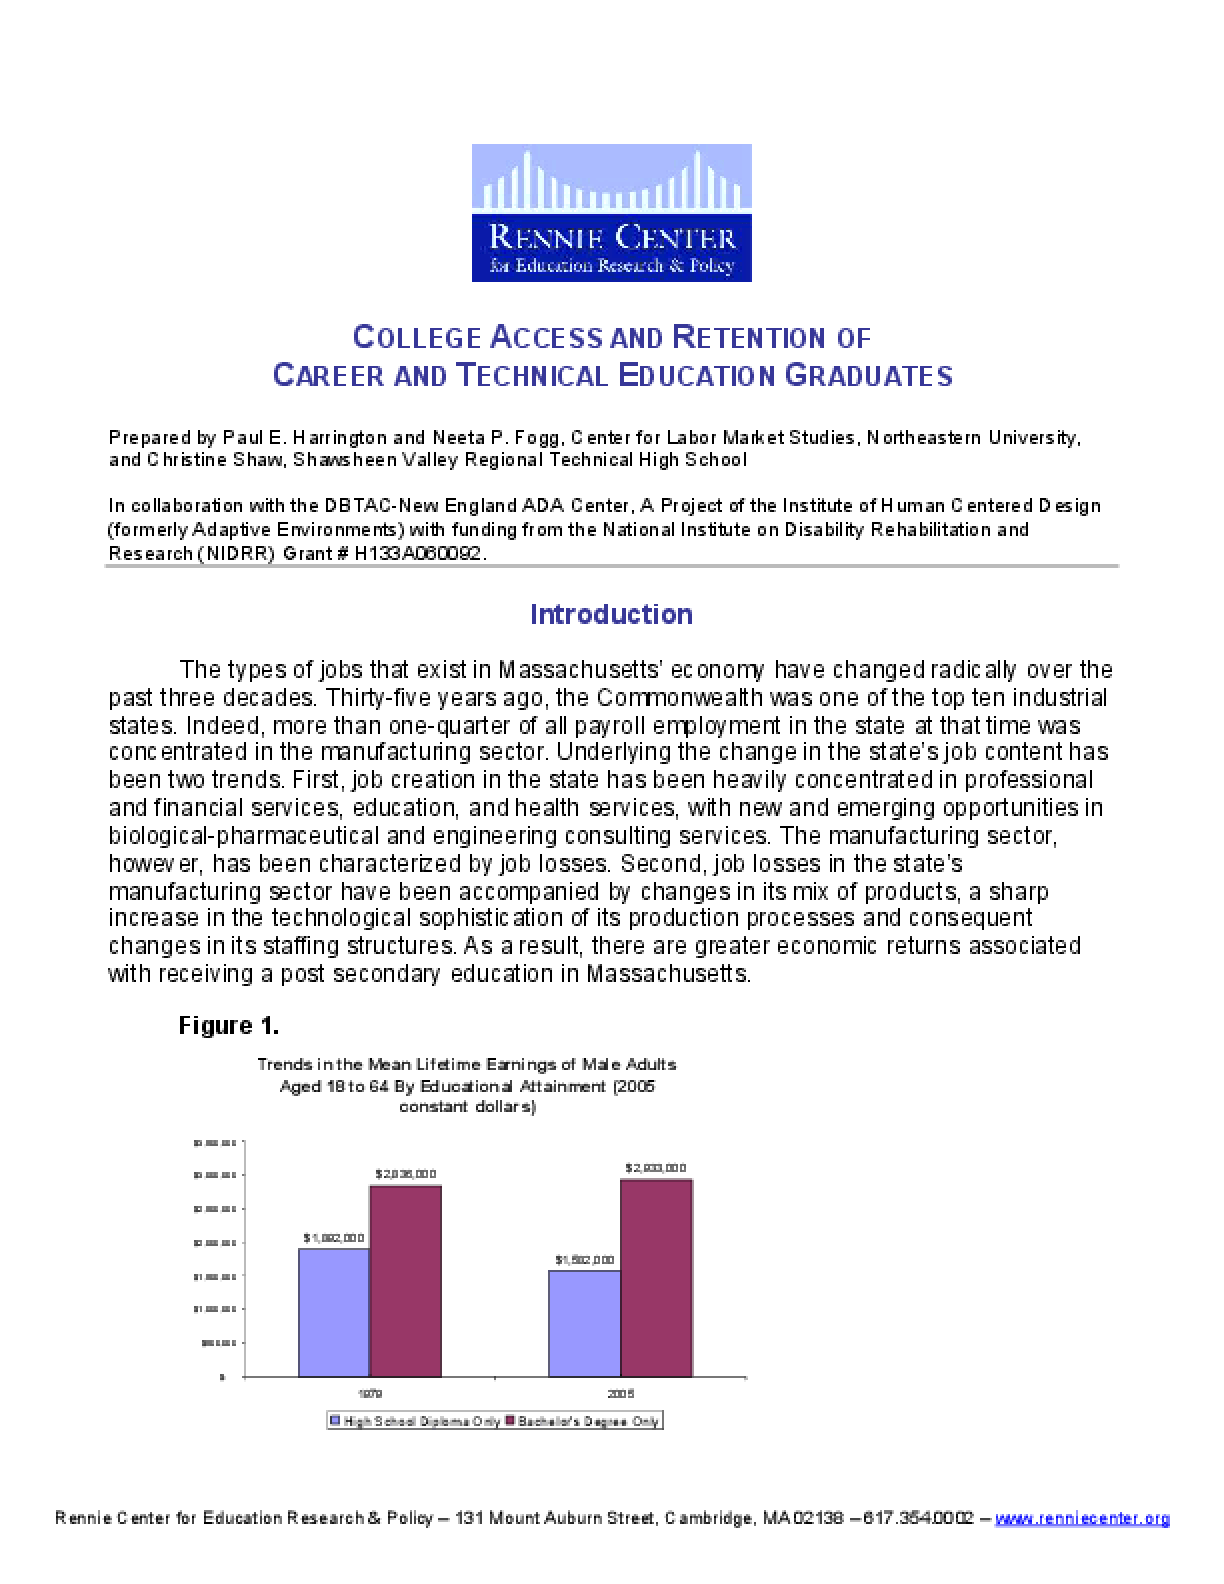 White Paper: College Access and Retention of Career and Technical Education Graduates